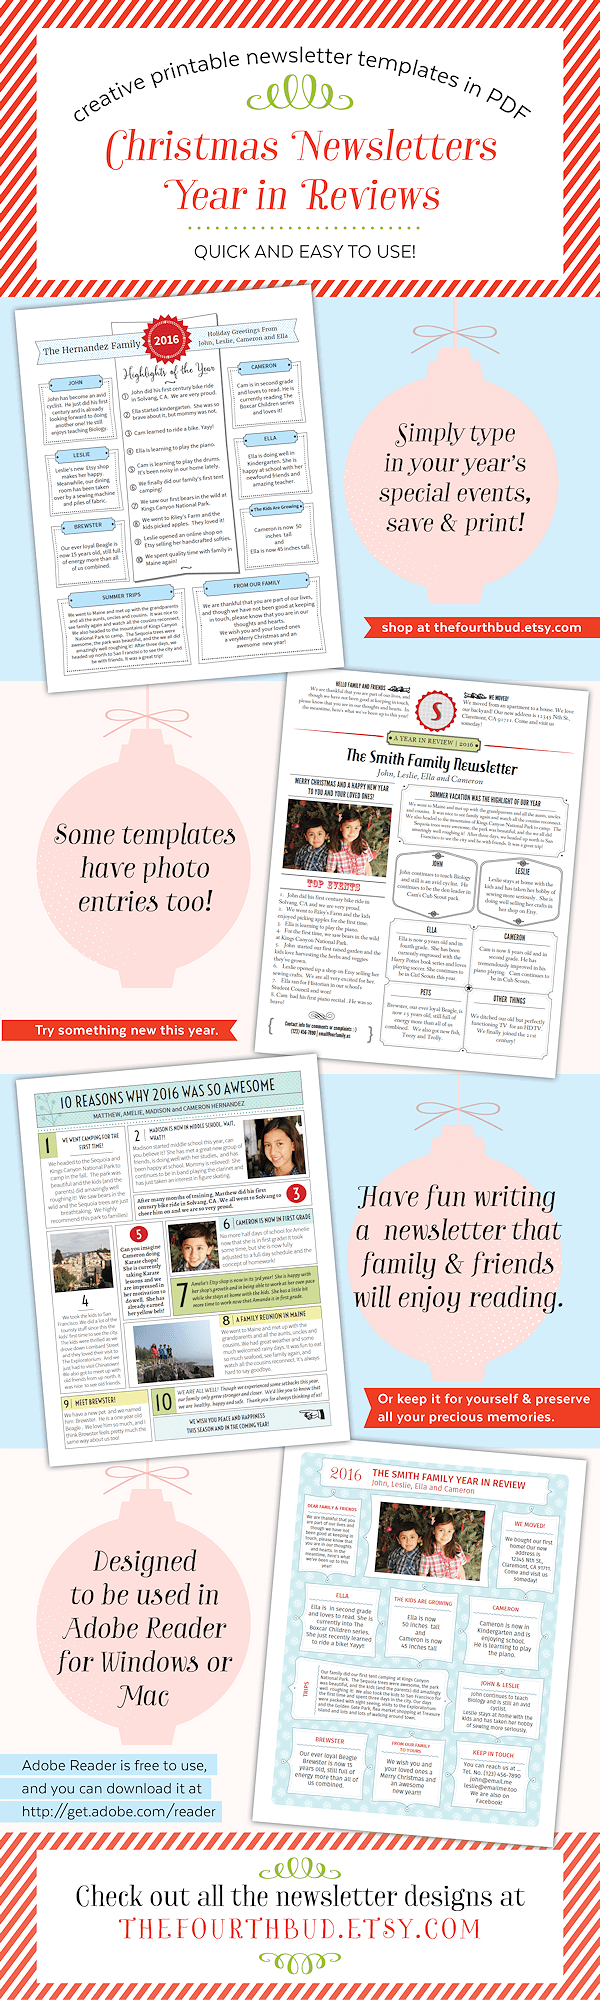 Take your Holiday Newsletter to a new level! Make this